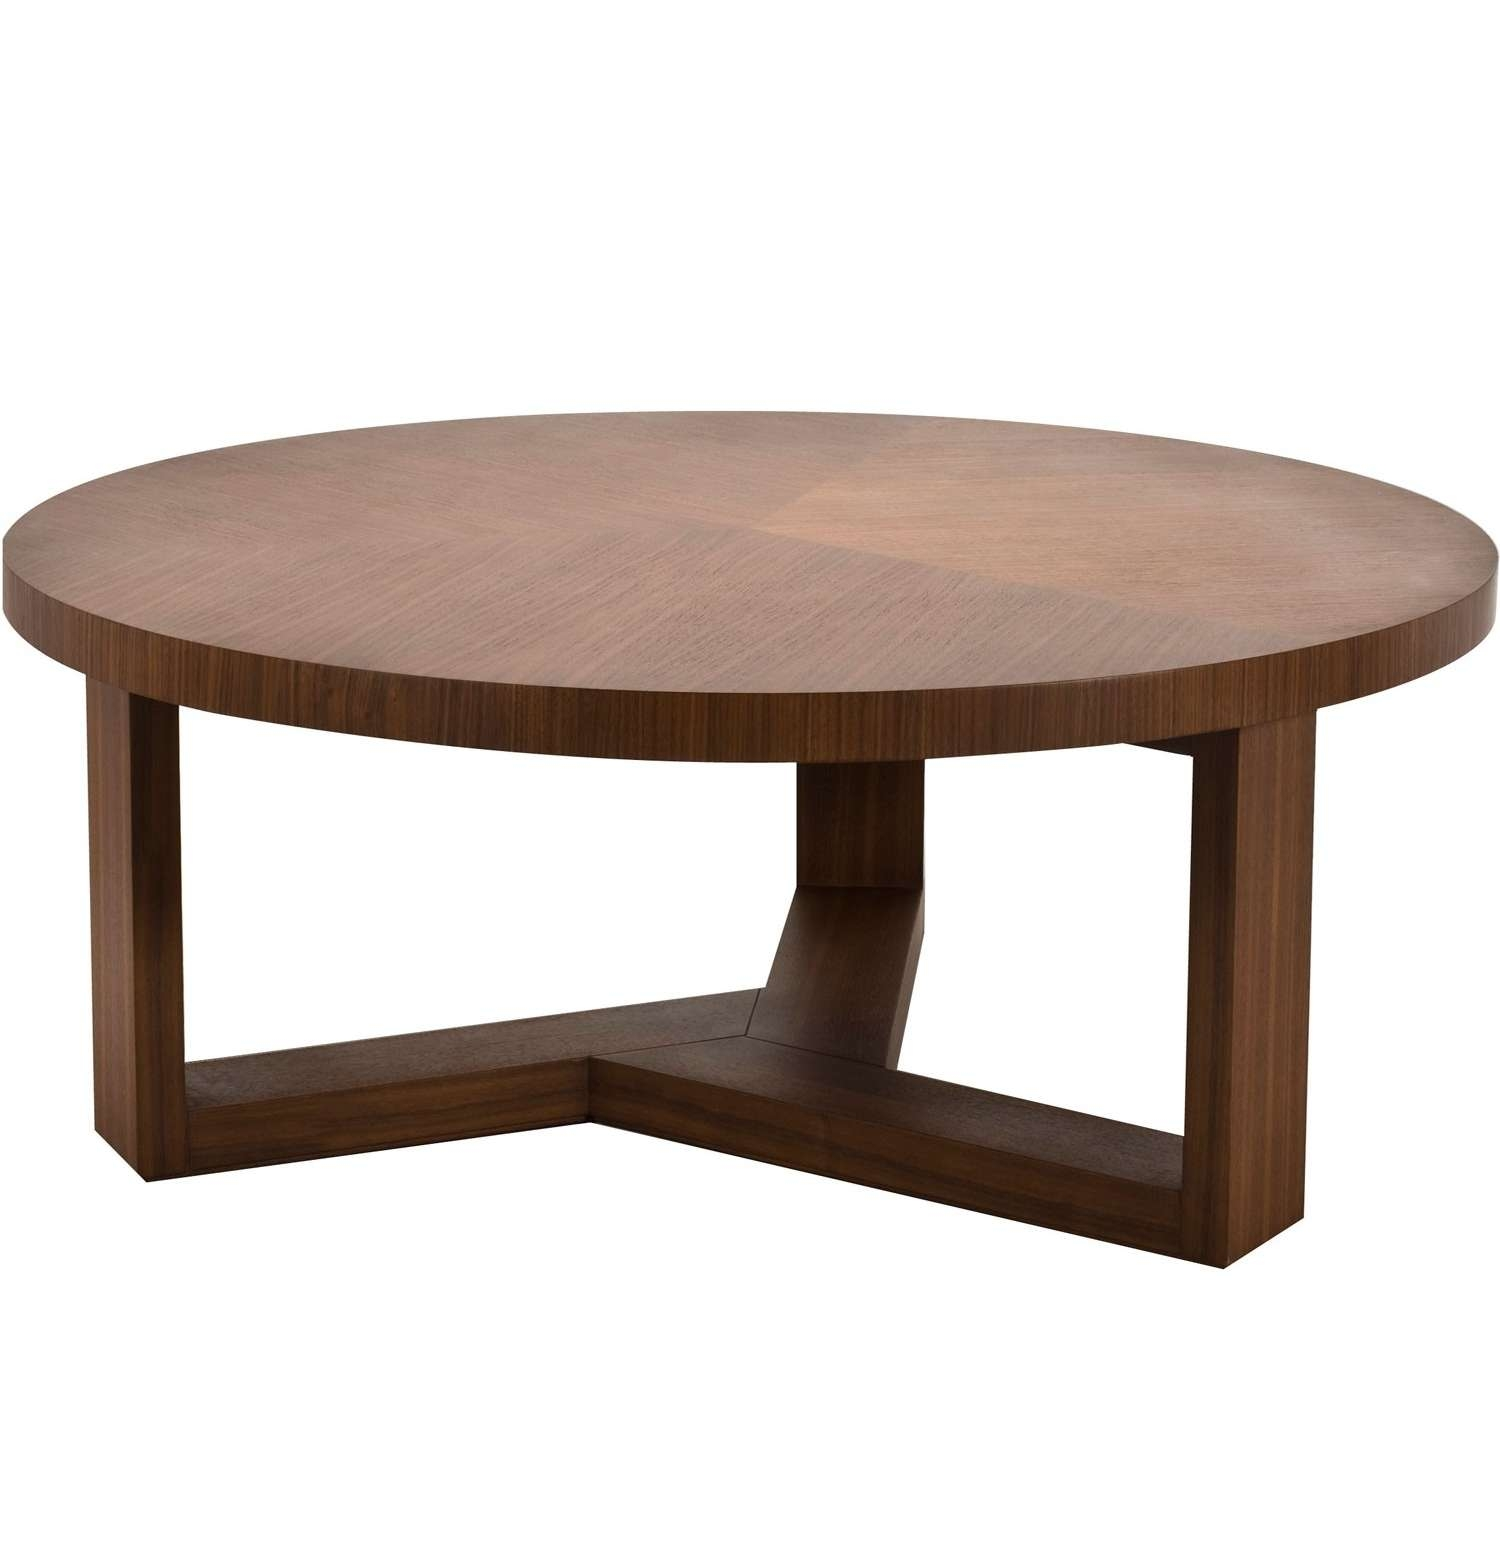 Coffee Tables : Furniture Round Coffee Table Rustic Wooden Plans Within Popular Small Circular Coffee Table (View 4 of 20)